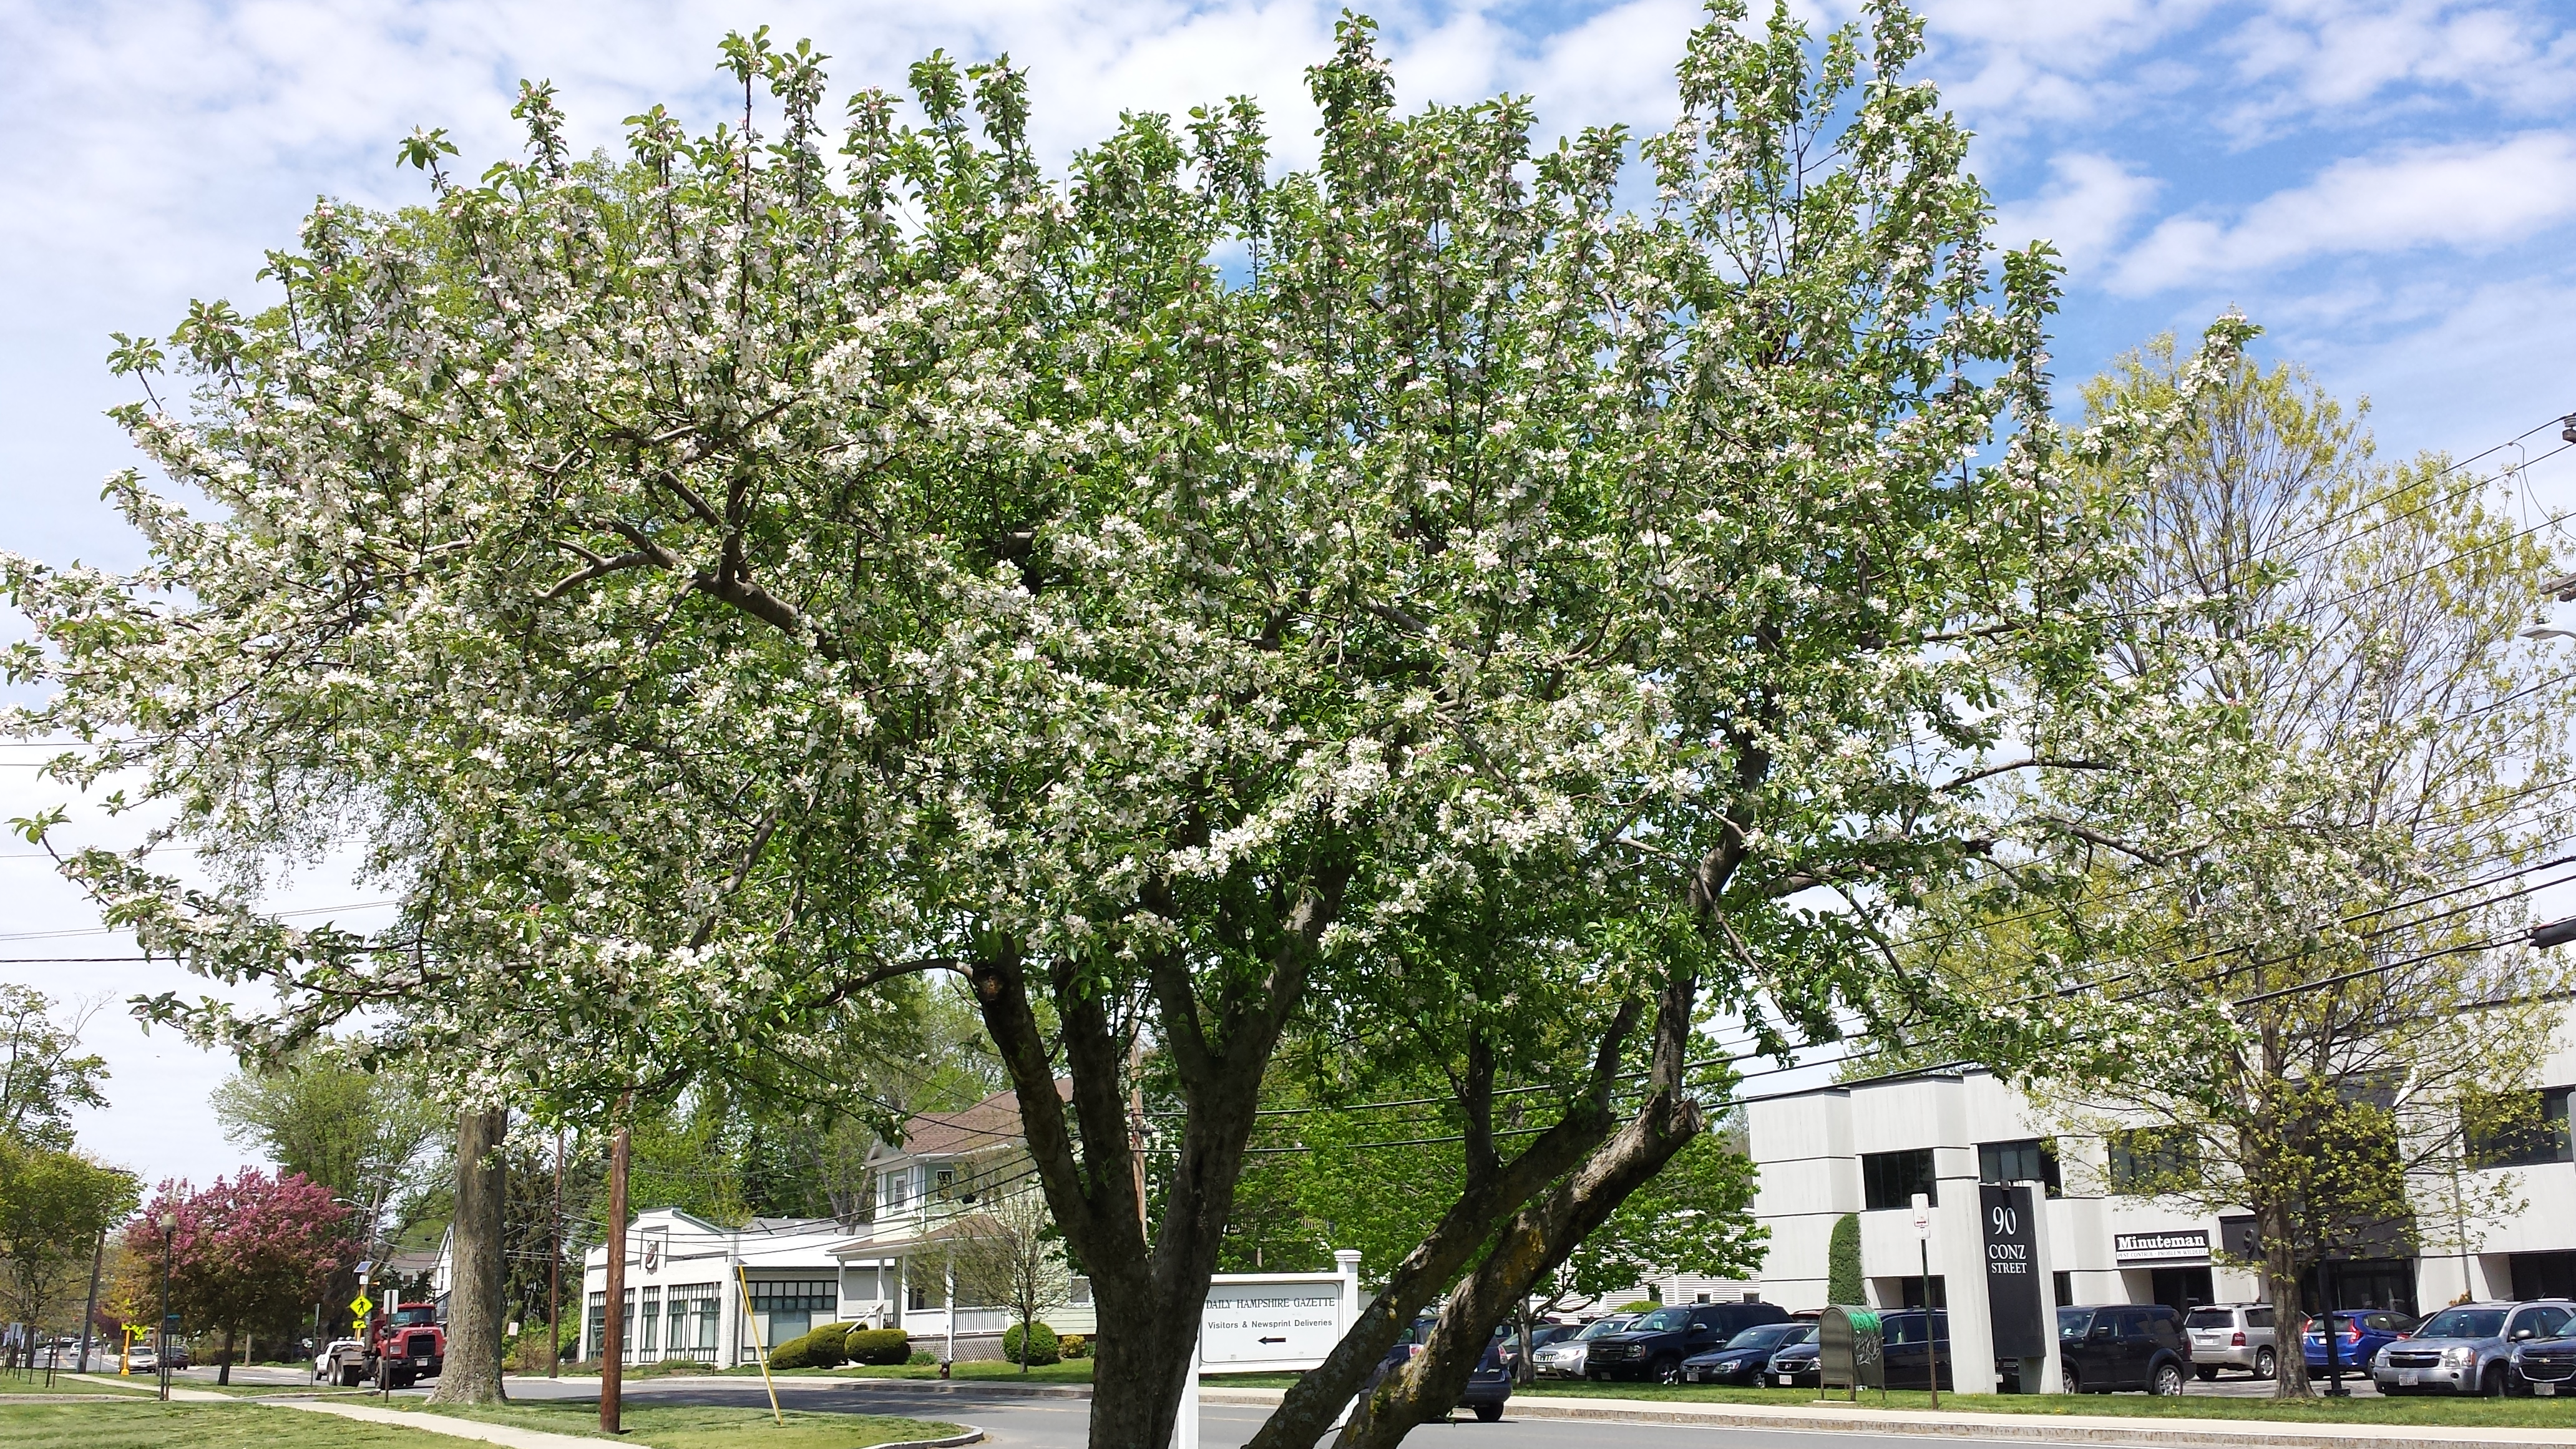 What Are Those Flowering Trees Bushes I Drive By Every Day Utter 1994 Lincoln Continental Mark Iv Instrument Panel Fuse Box Diagram Common Name Crabapple